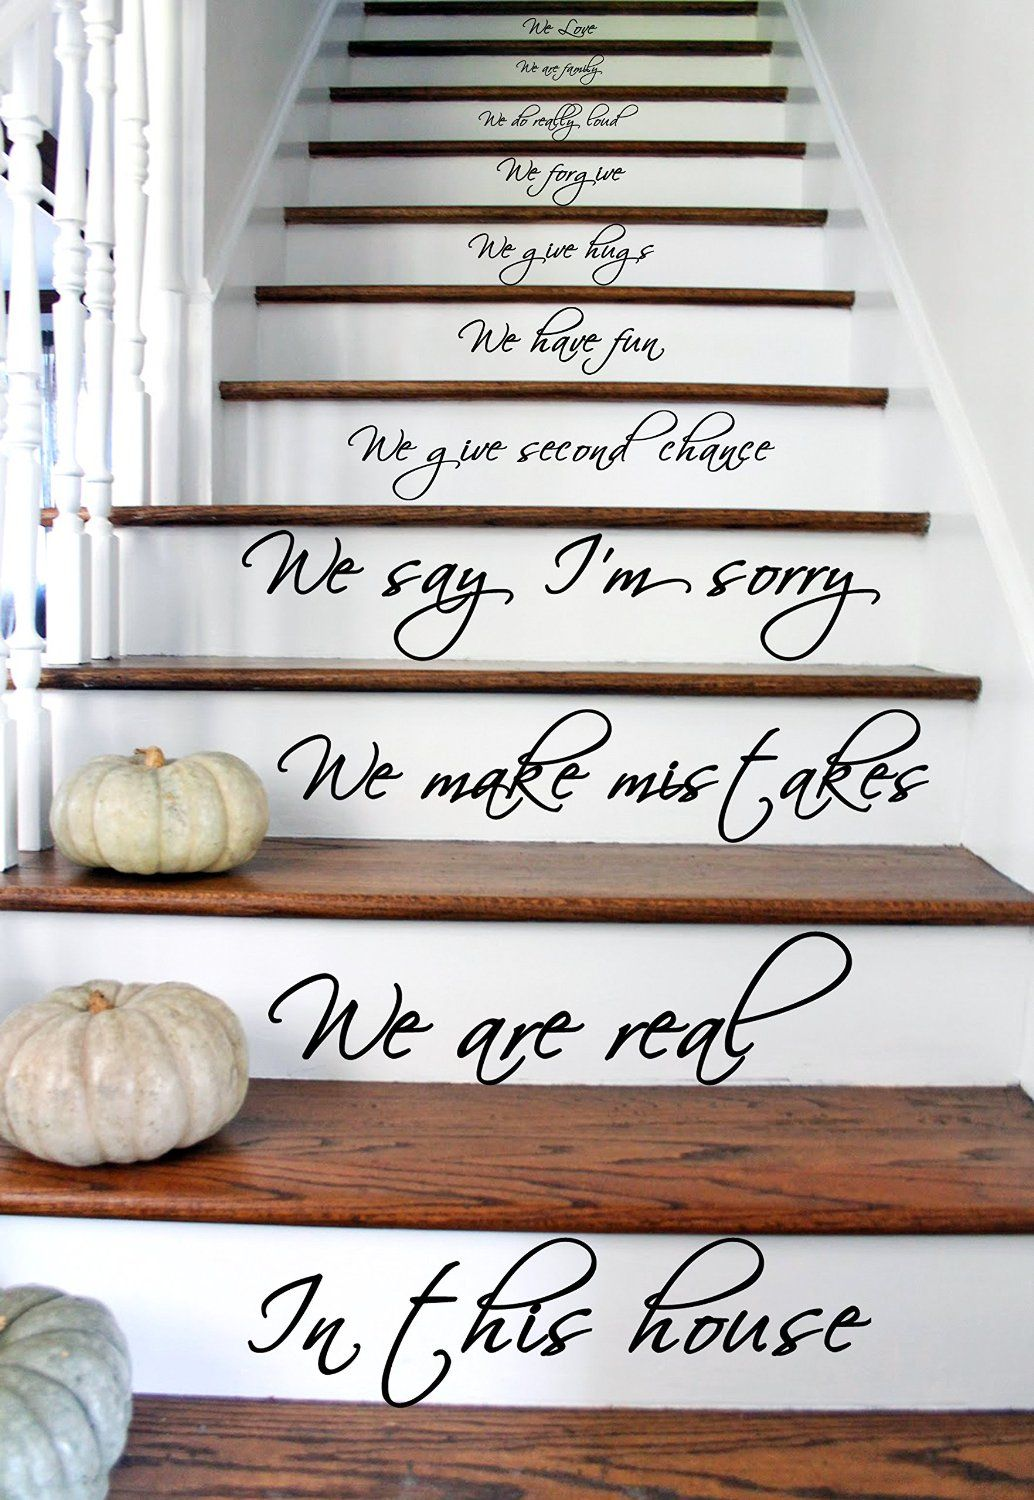 33x60 cm in this house we do we love words text quote stairs or vinyl stairs decal quote in this house we are family we love do inspirational text wall art decor home sticker free random decal gift amipublicfo Choice Image